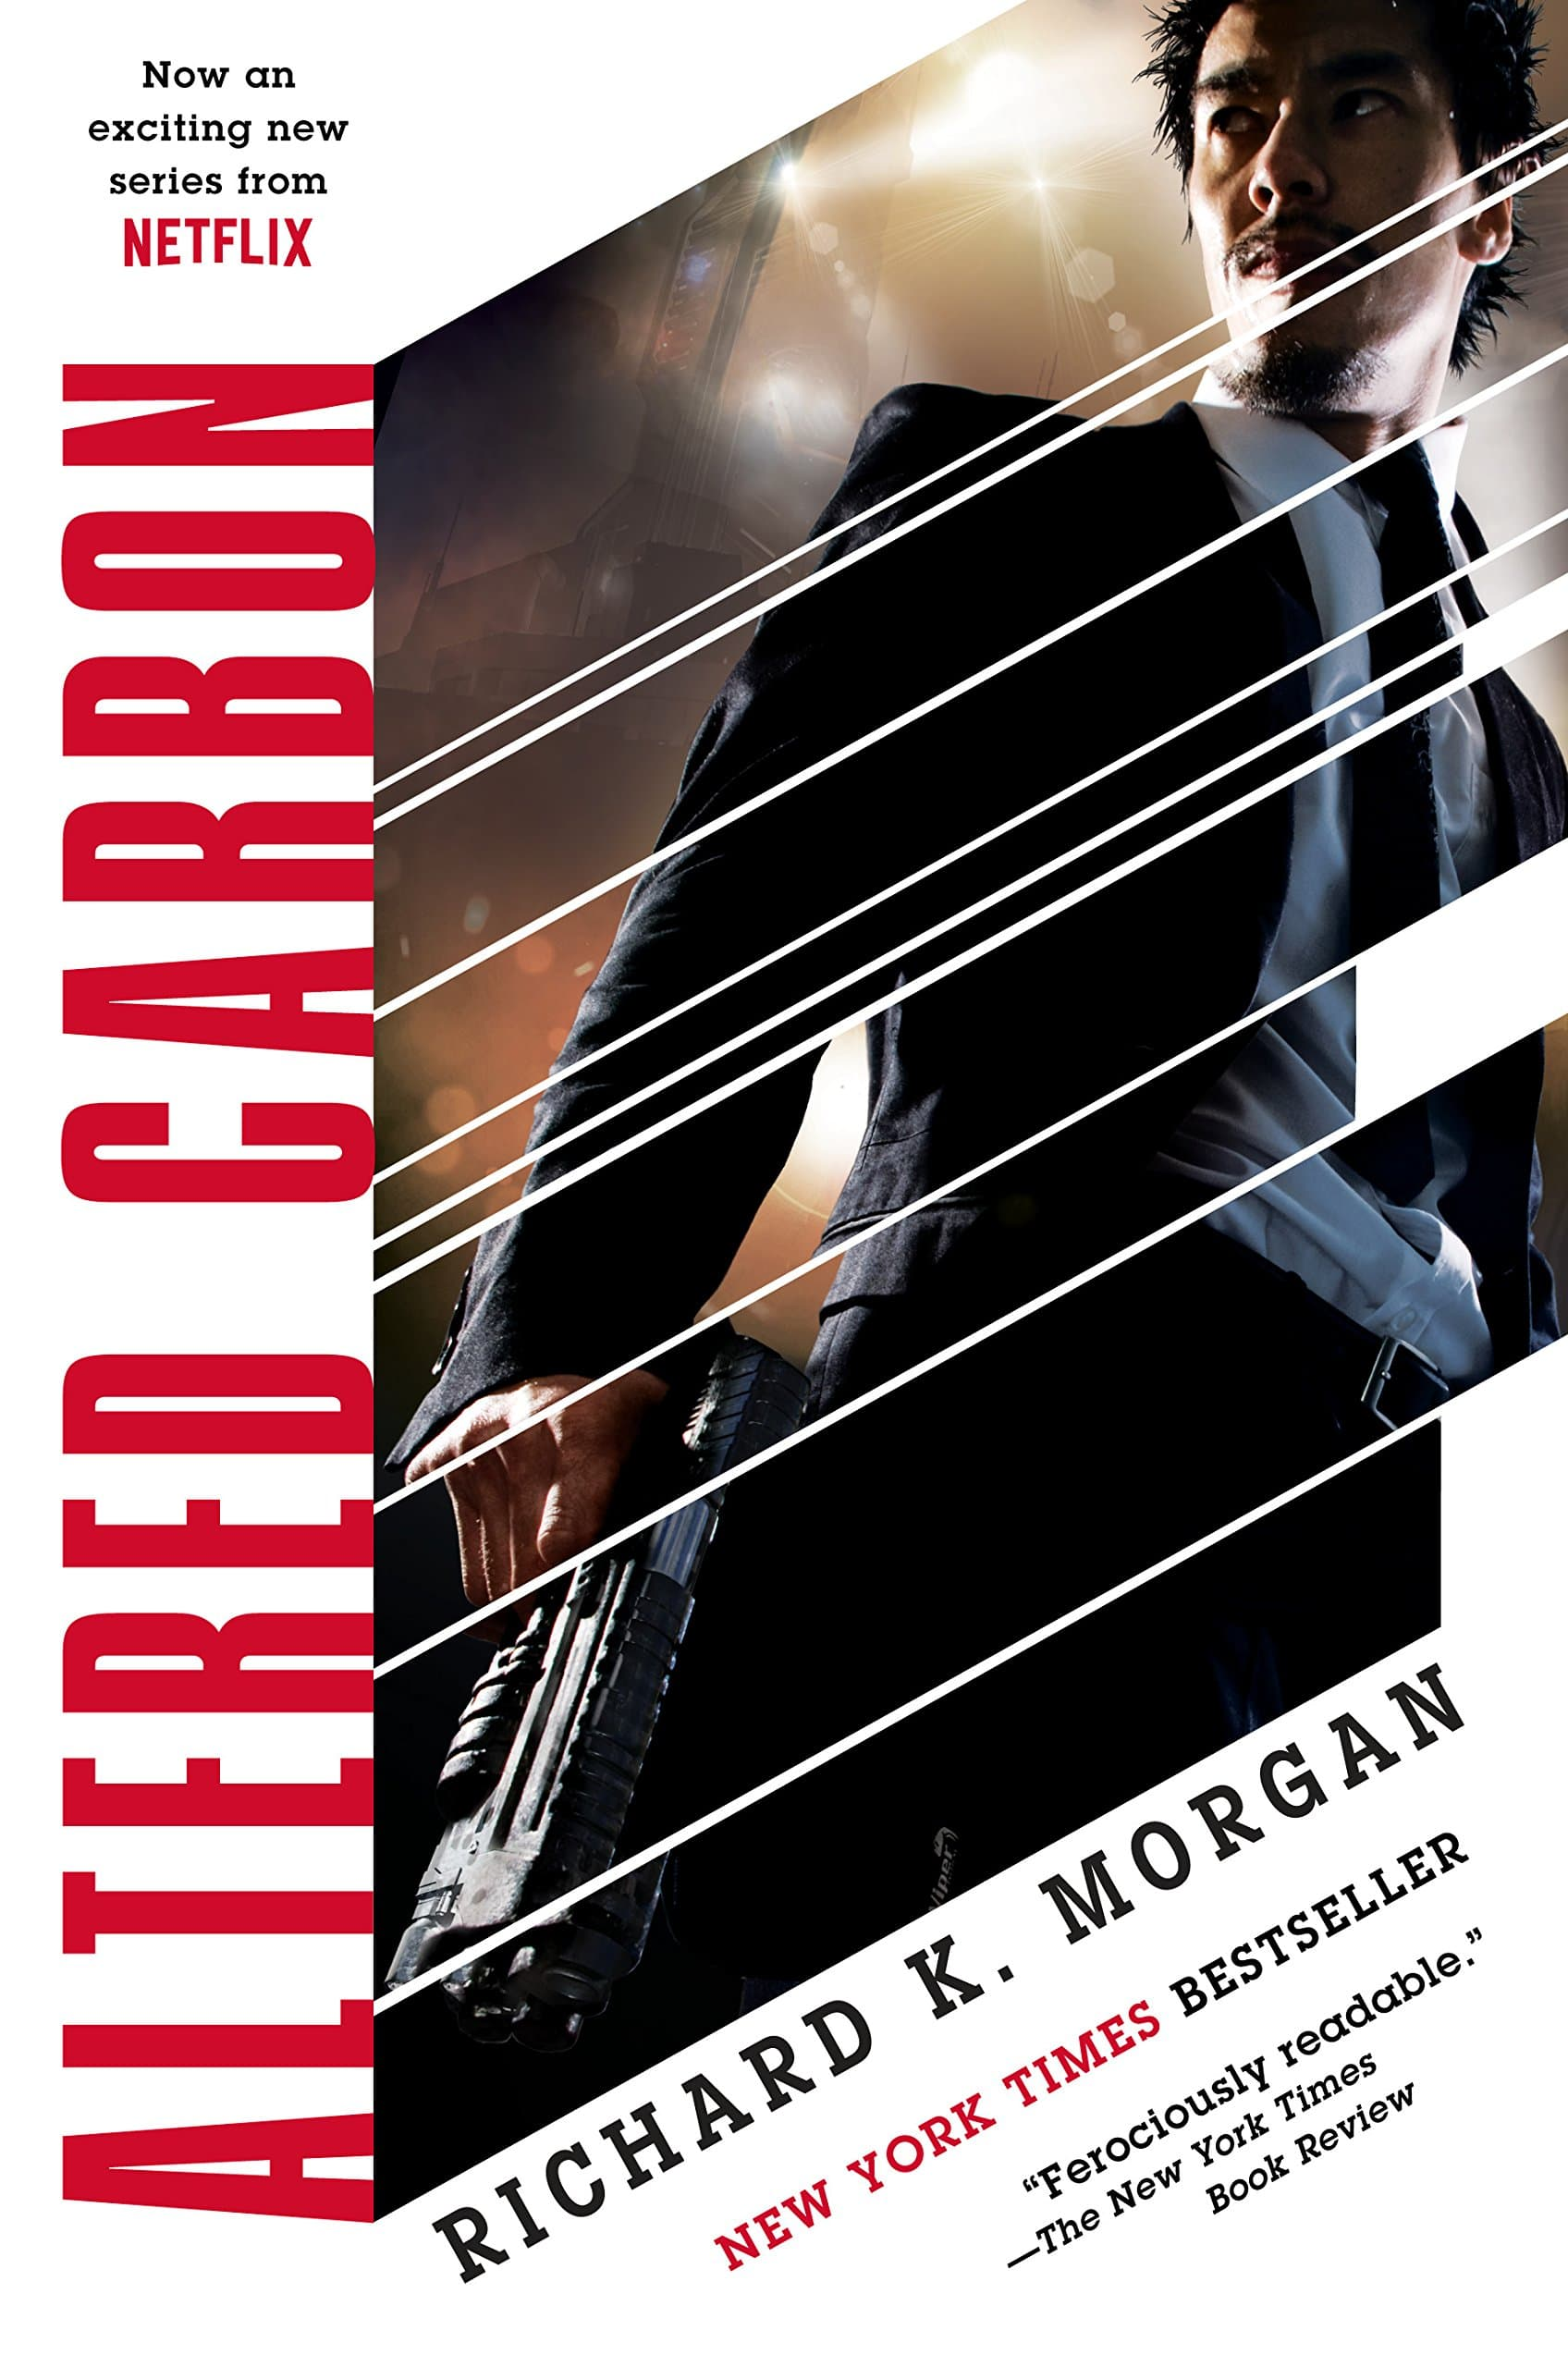 The cover of Altered Carbon